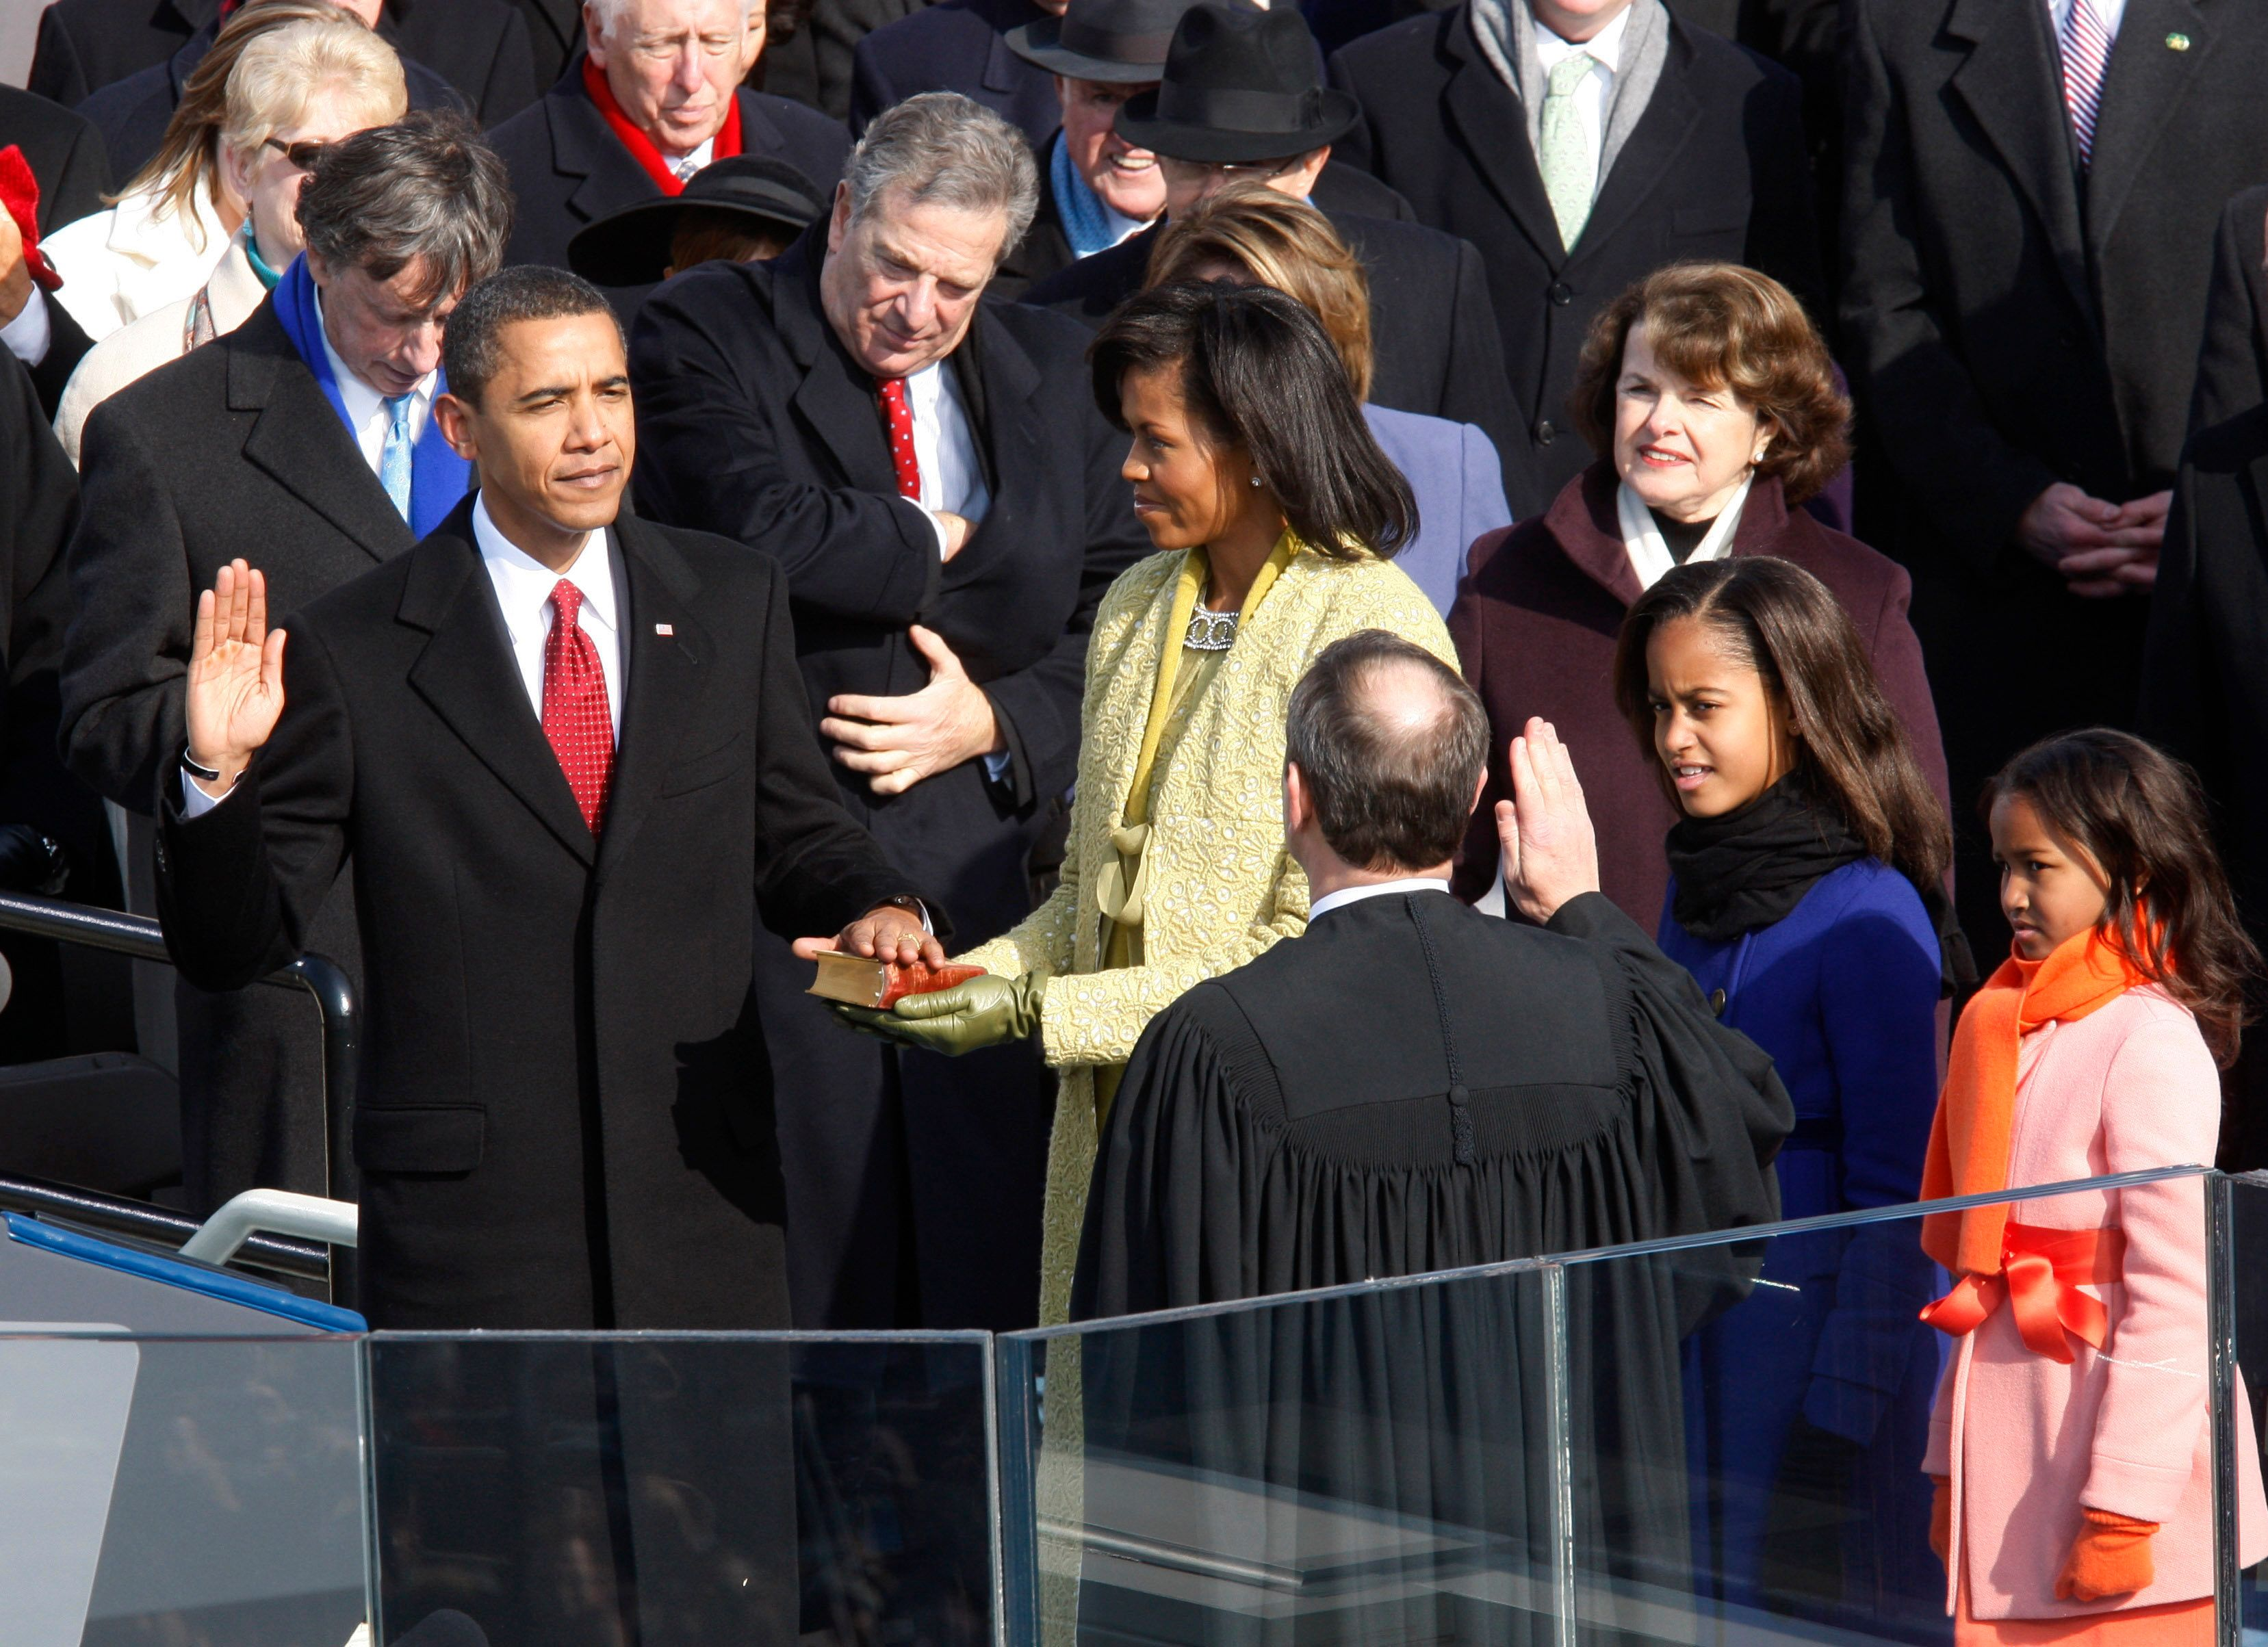 The 44th President of the United States, Barack Obama, takes the oath given by US. Supreme Chief Justice John Roberts, Jr. (lower right) during the inauguration ceremony in Washington, January 20, 2009. Daughters Malia and Sasha (R) look on, as Michelle Obama holds the Bible used by President Abraham Lincoln at his inauguration in 1861.      REUTERS/Jim Bourg (UNITED STATES)